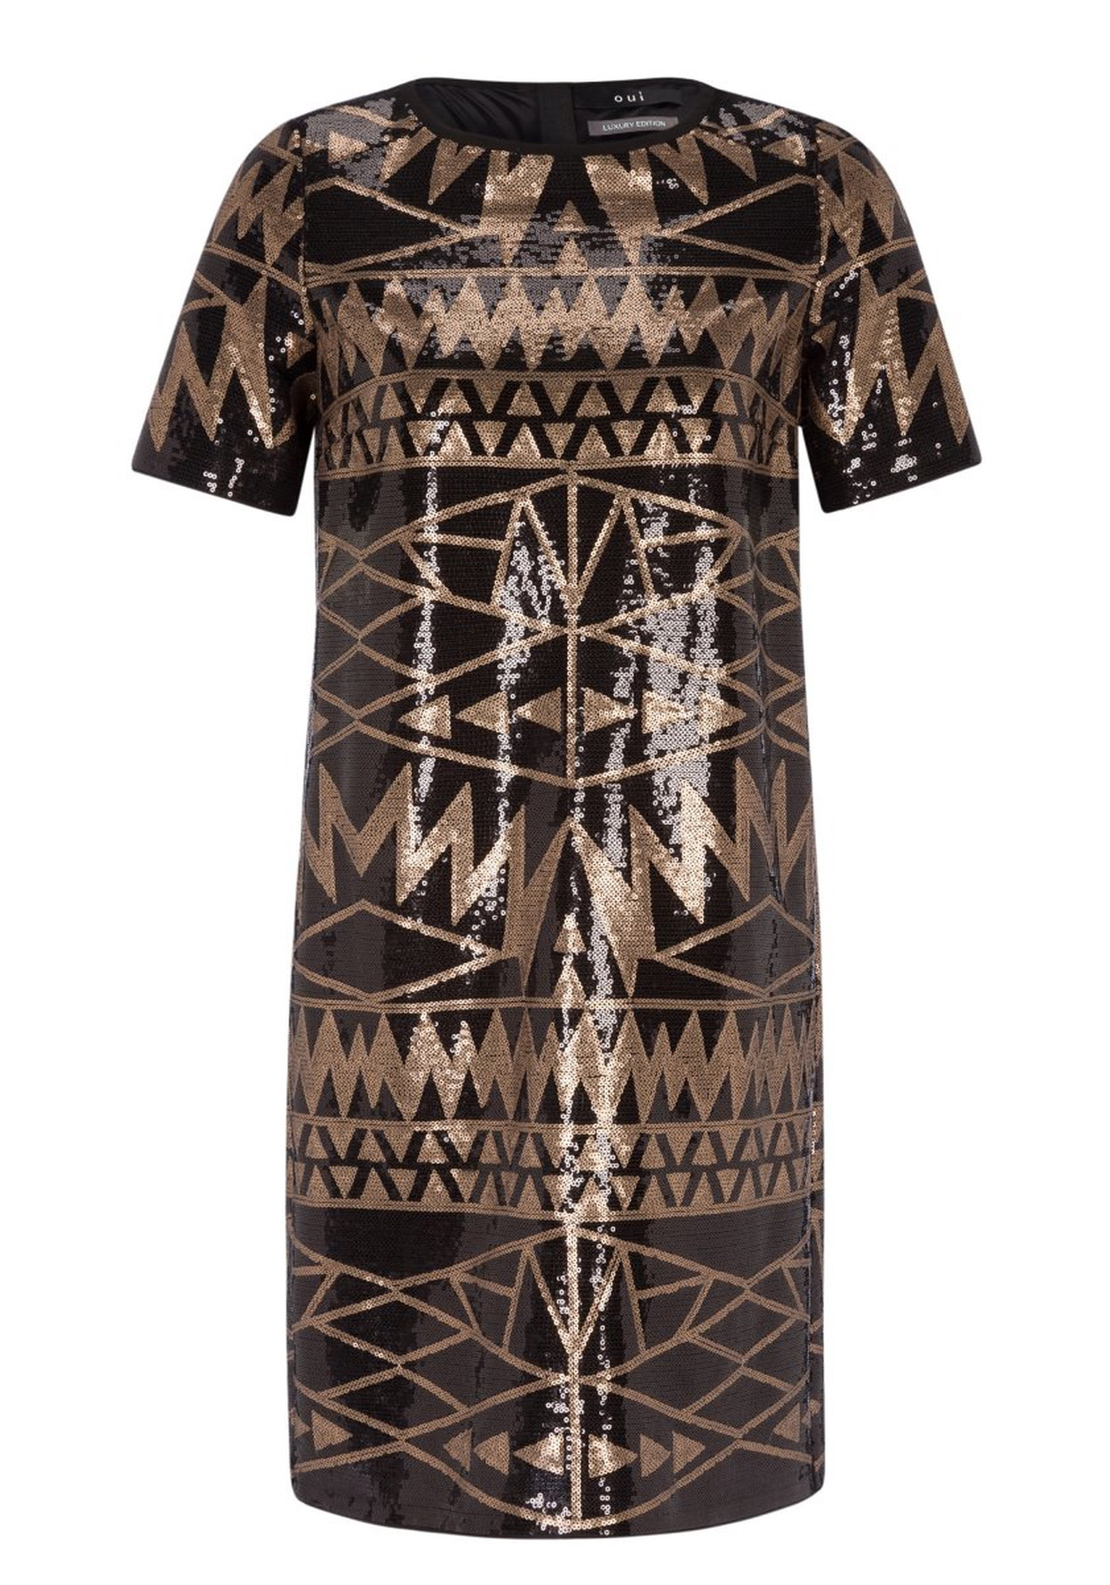 Oui Sequin Embellished Geometric Print Tunic Dress, Black and Bronze